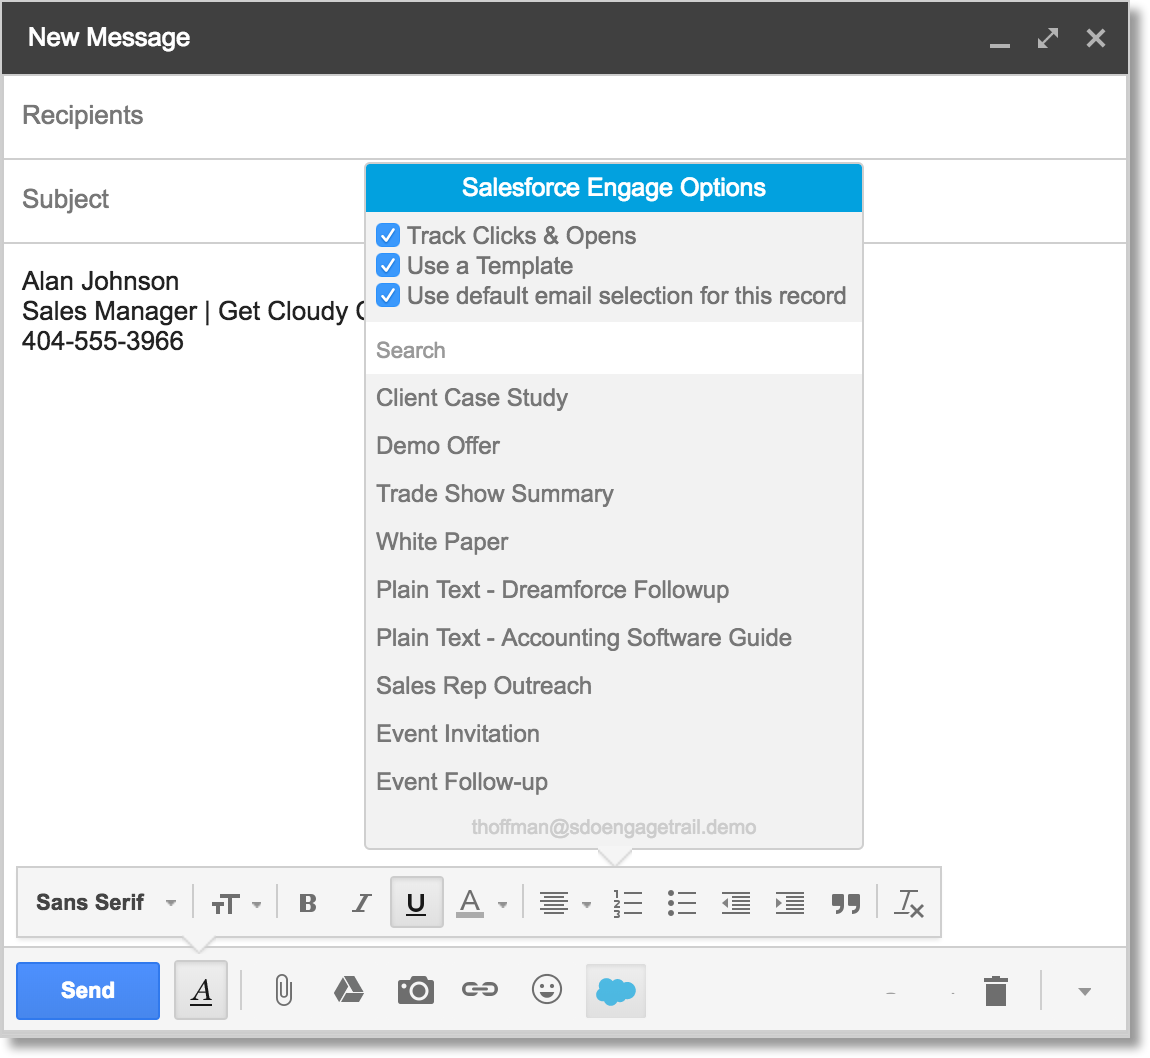 [Salesforce Engage Options (Salesforce Engage オプション)] を表示する Engage for Gmail